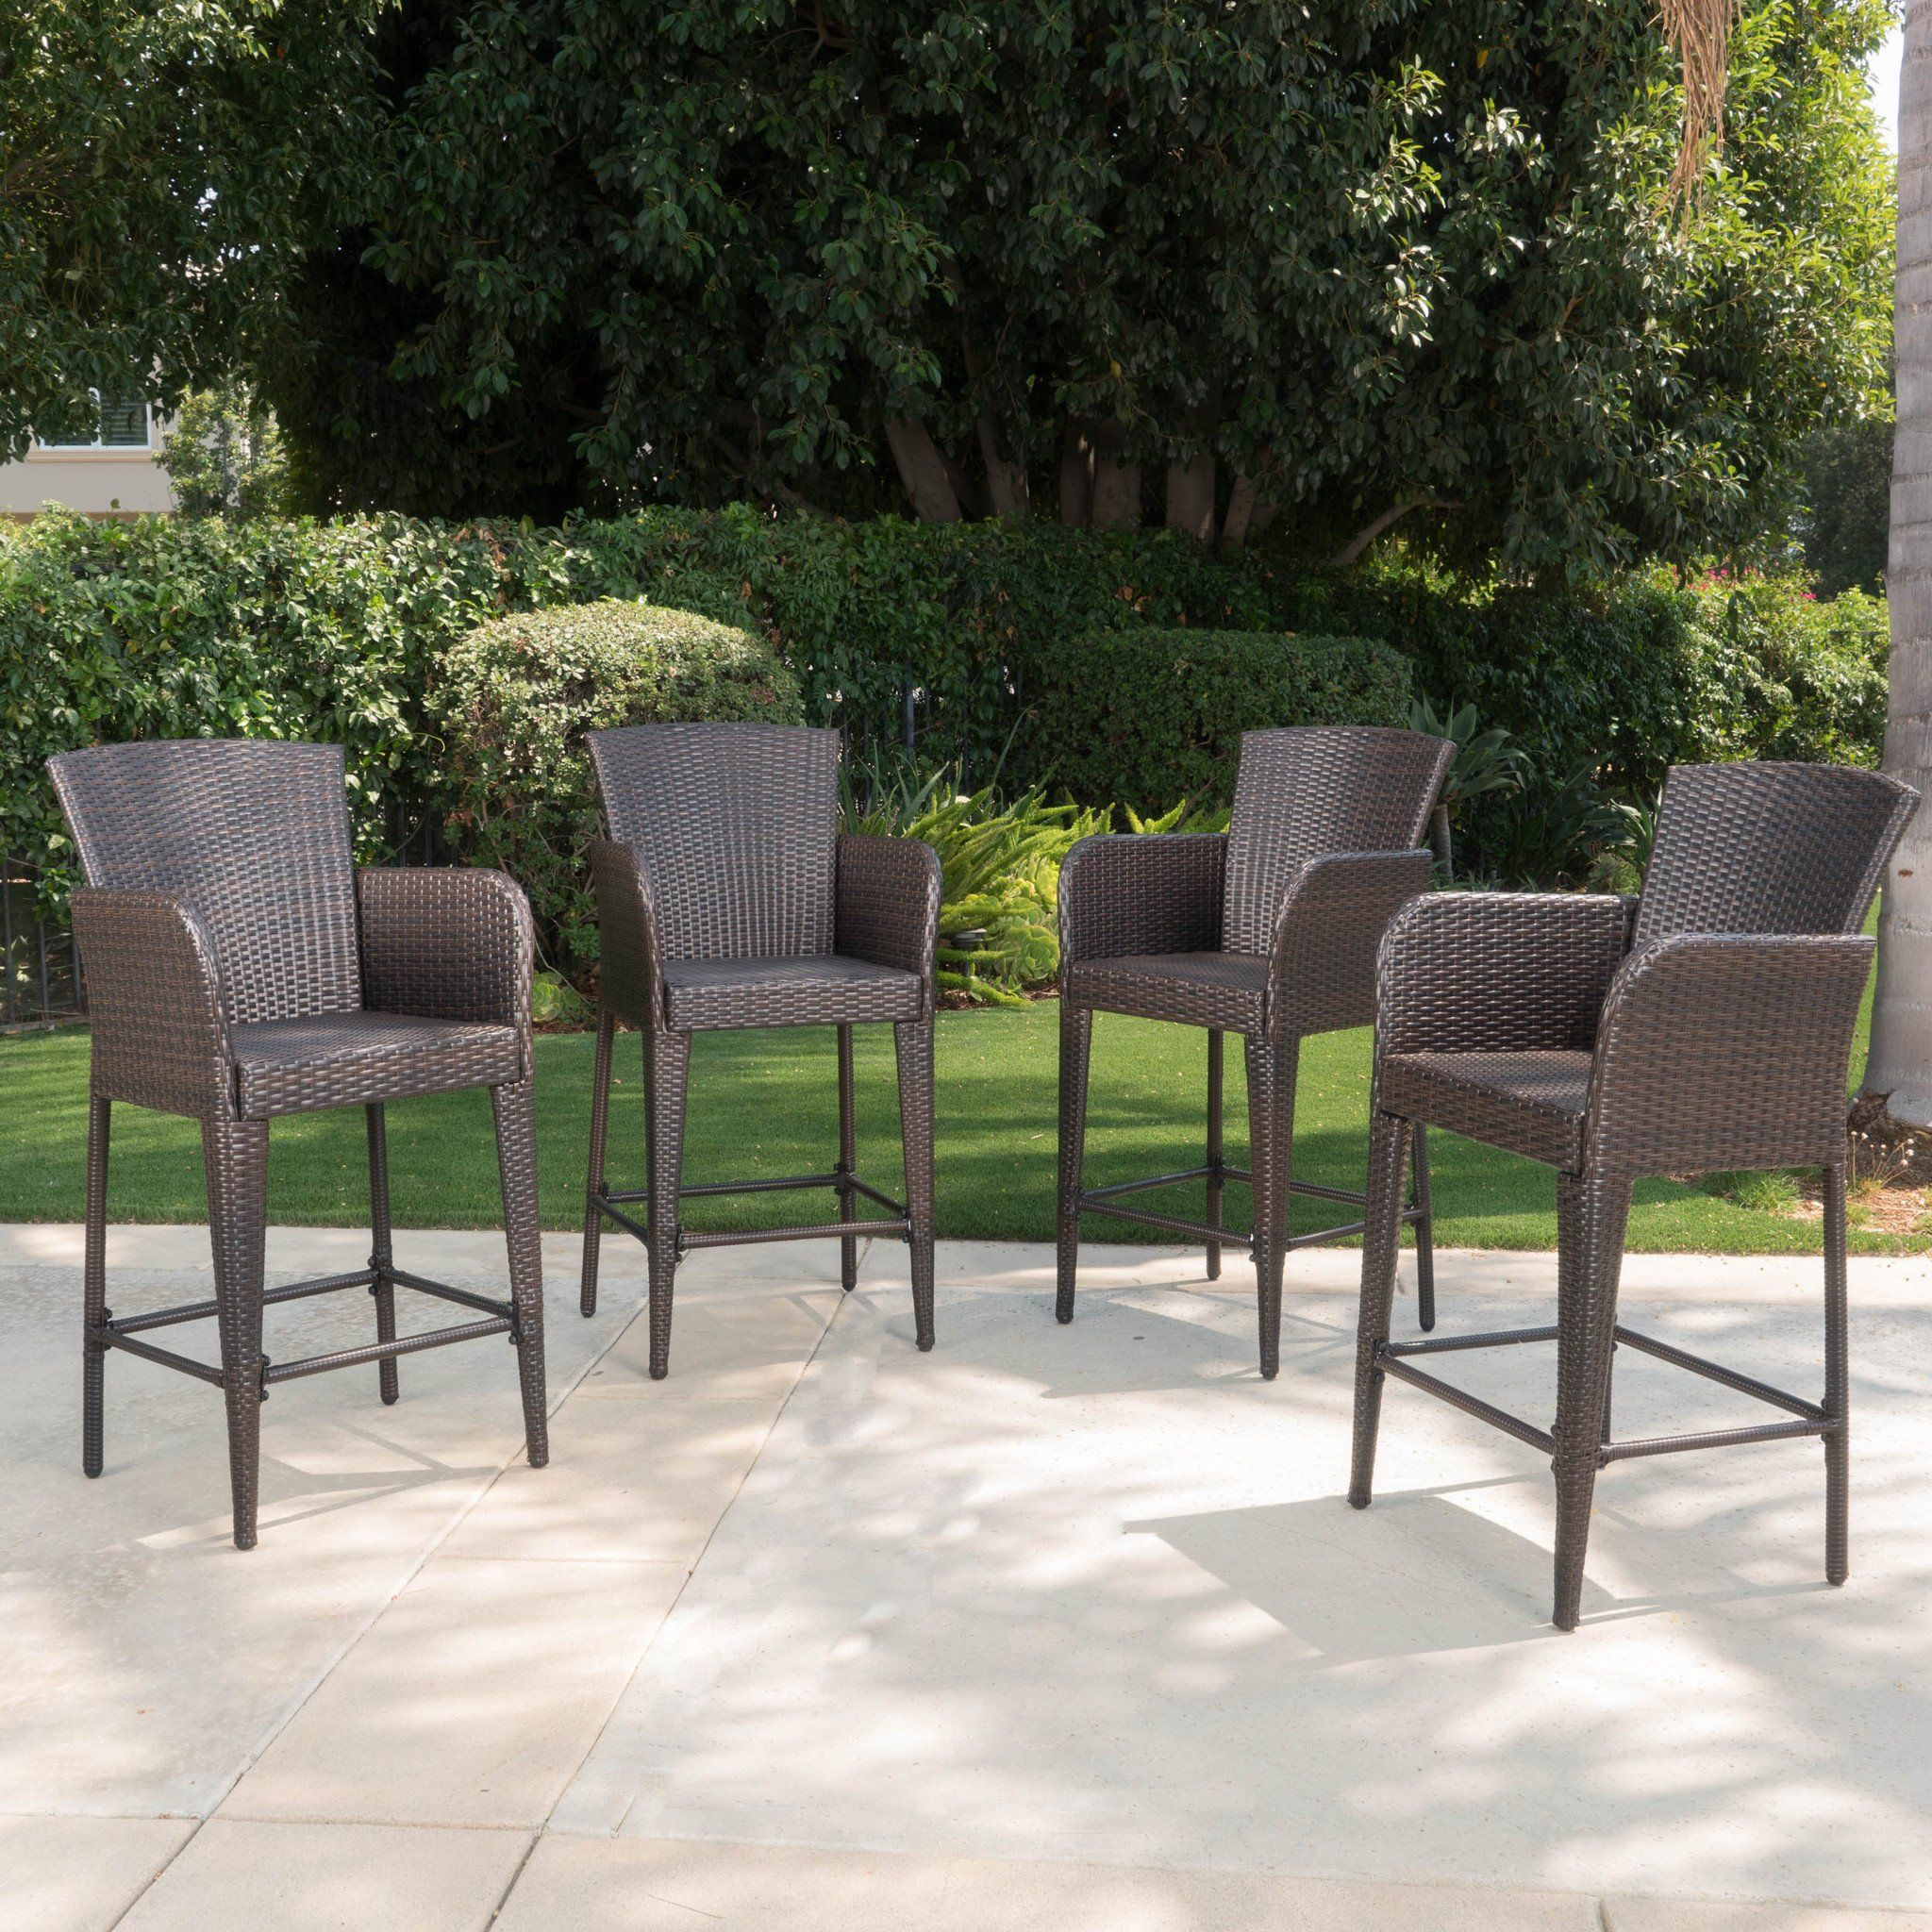 Bheleso 28 inch contemporary outdoor multibrown wicker barstool set of 4